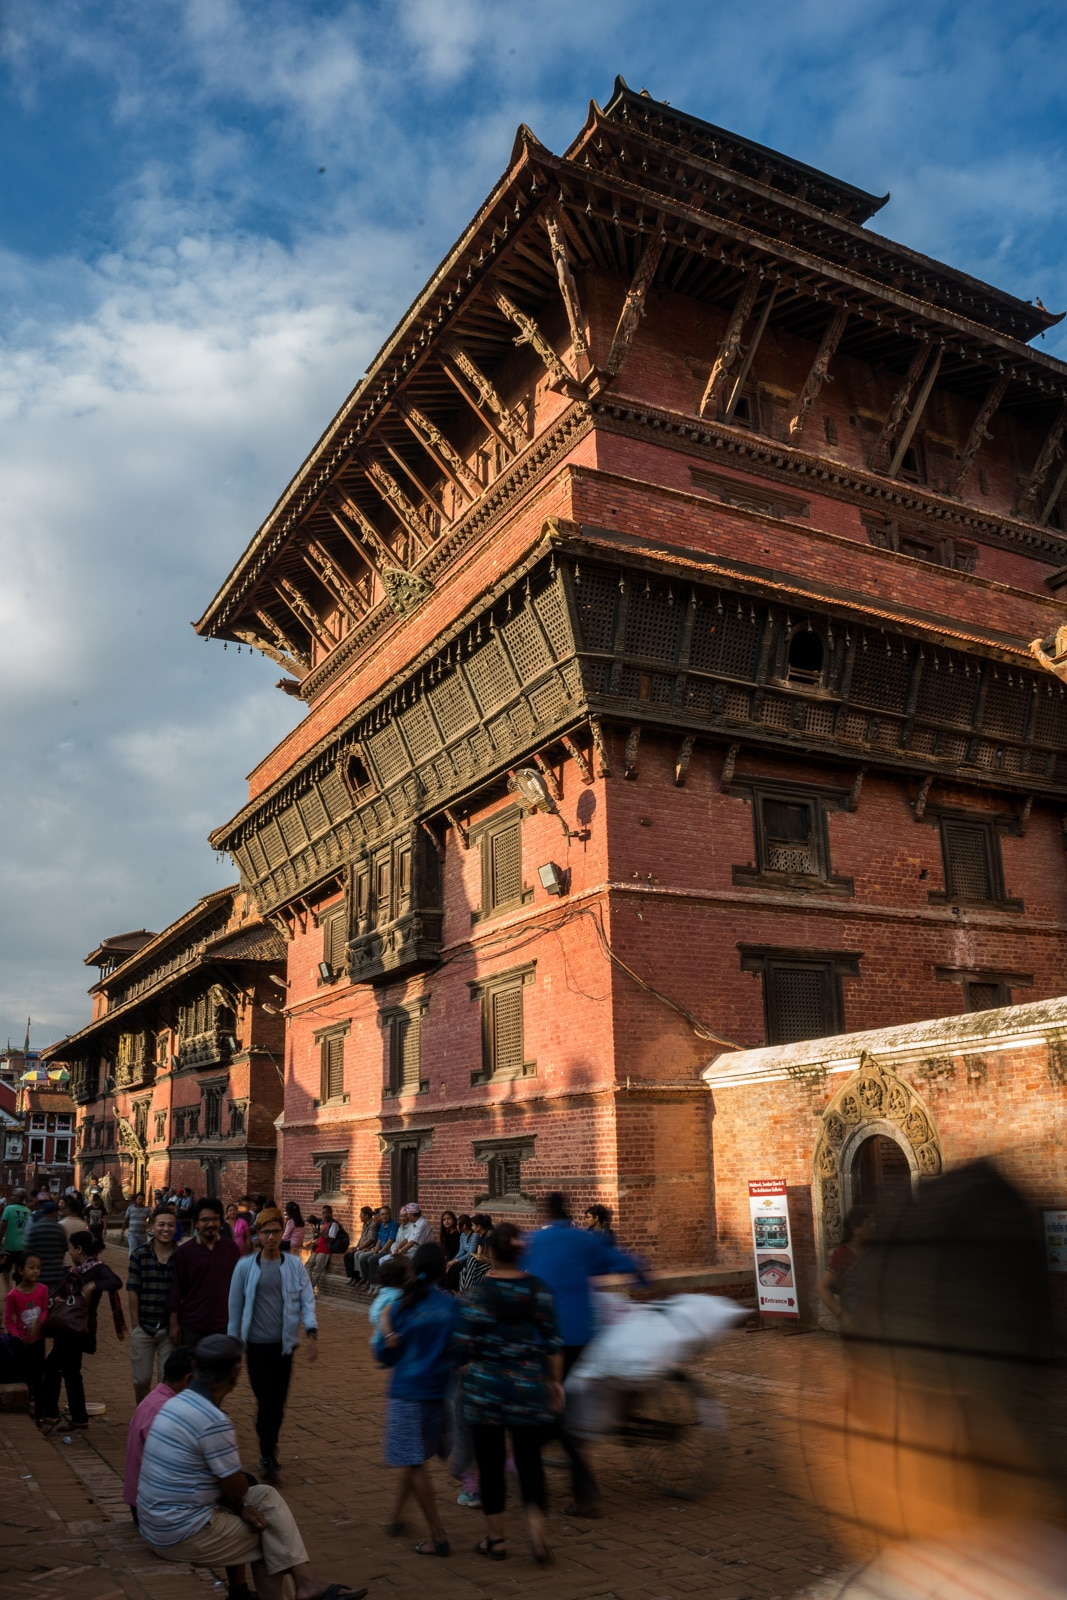 Warm colors during sunset at the famous Durbar Square in Patan, Nepal. Only half an hour's drive from the Thamel area of Kathmandu, Patan is a top destination for anyone traveling to the Kathmandu Valley.